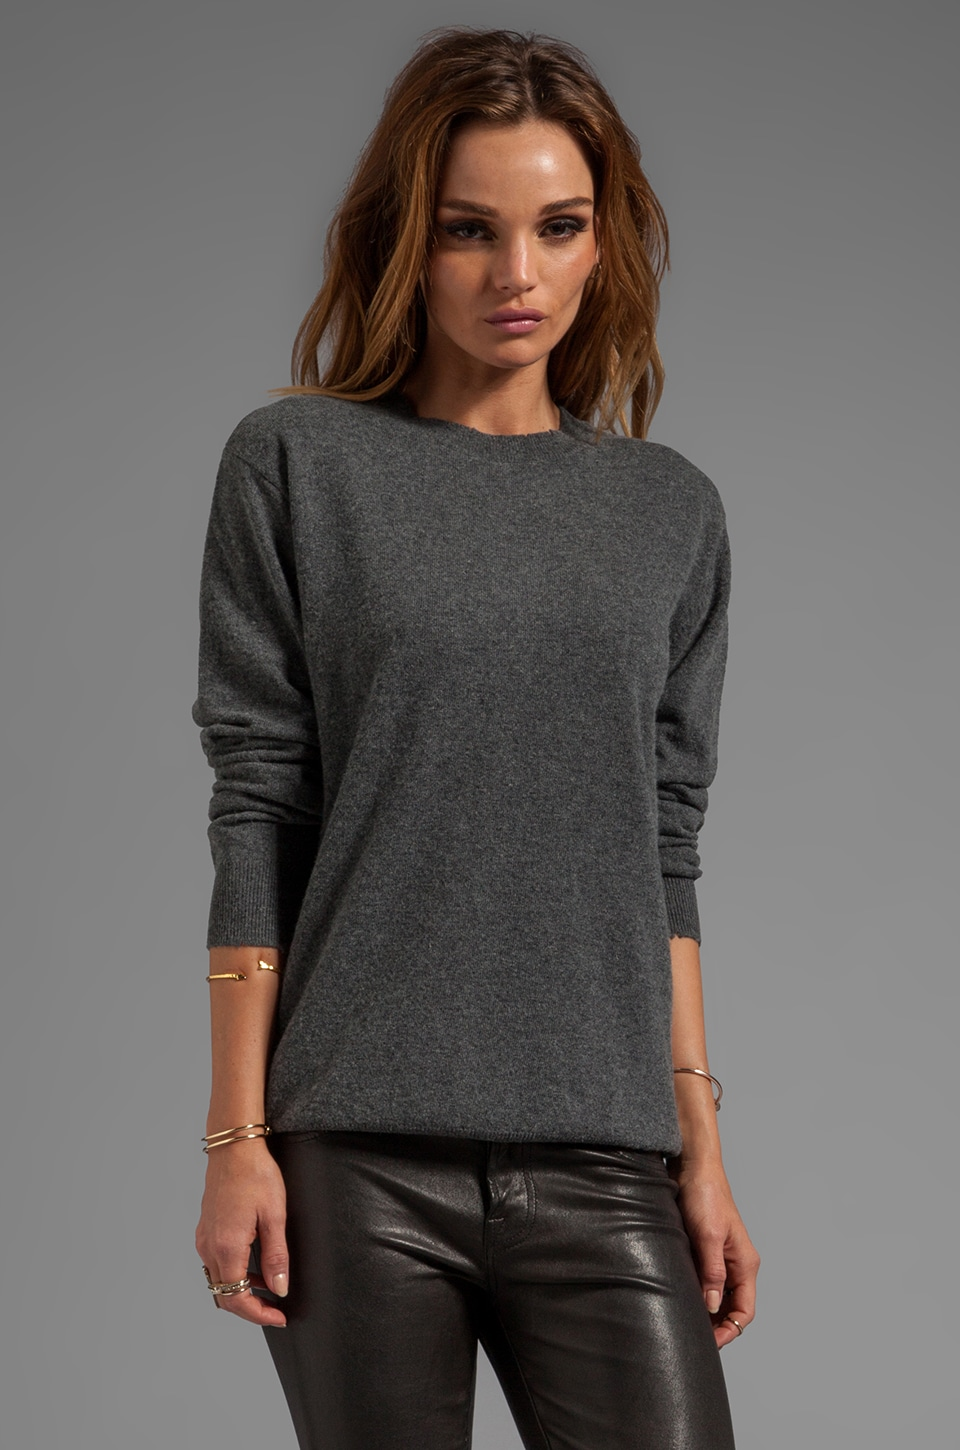 T by Alexander Wang Distressed Merino Blend Knit Pullover in Heather Grey